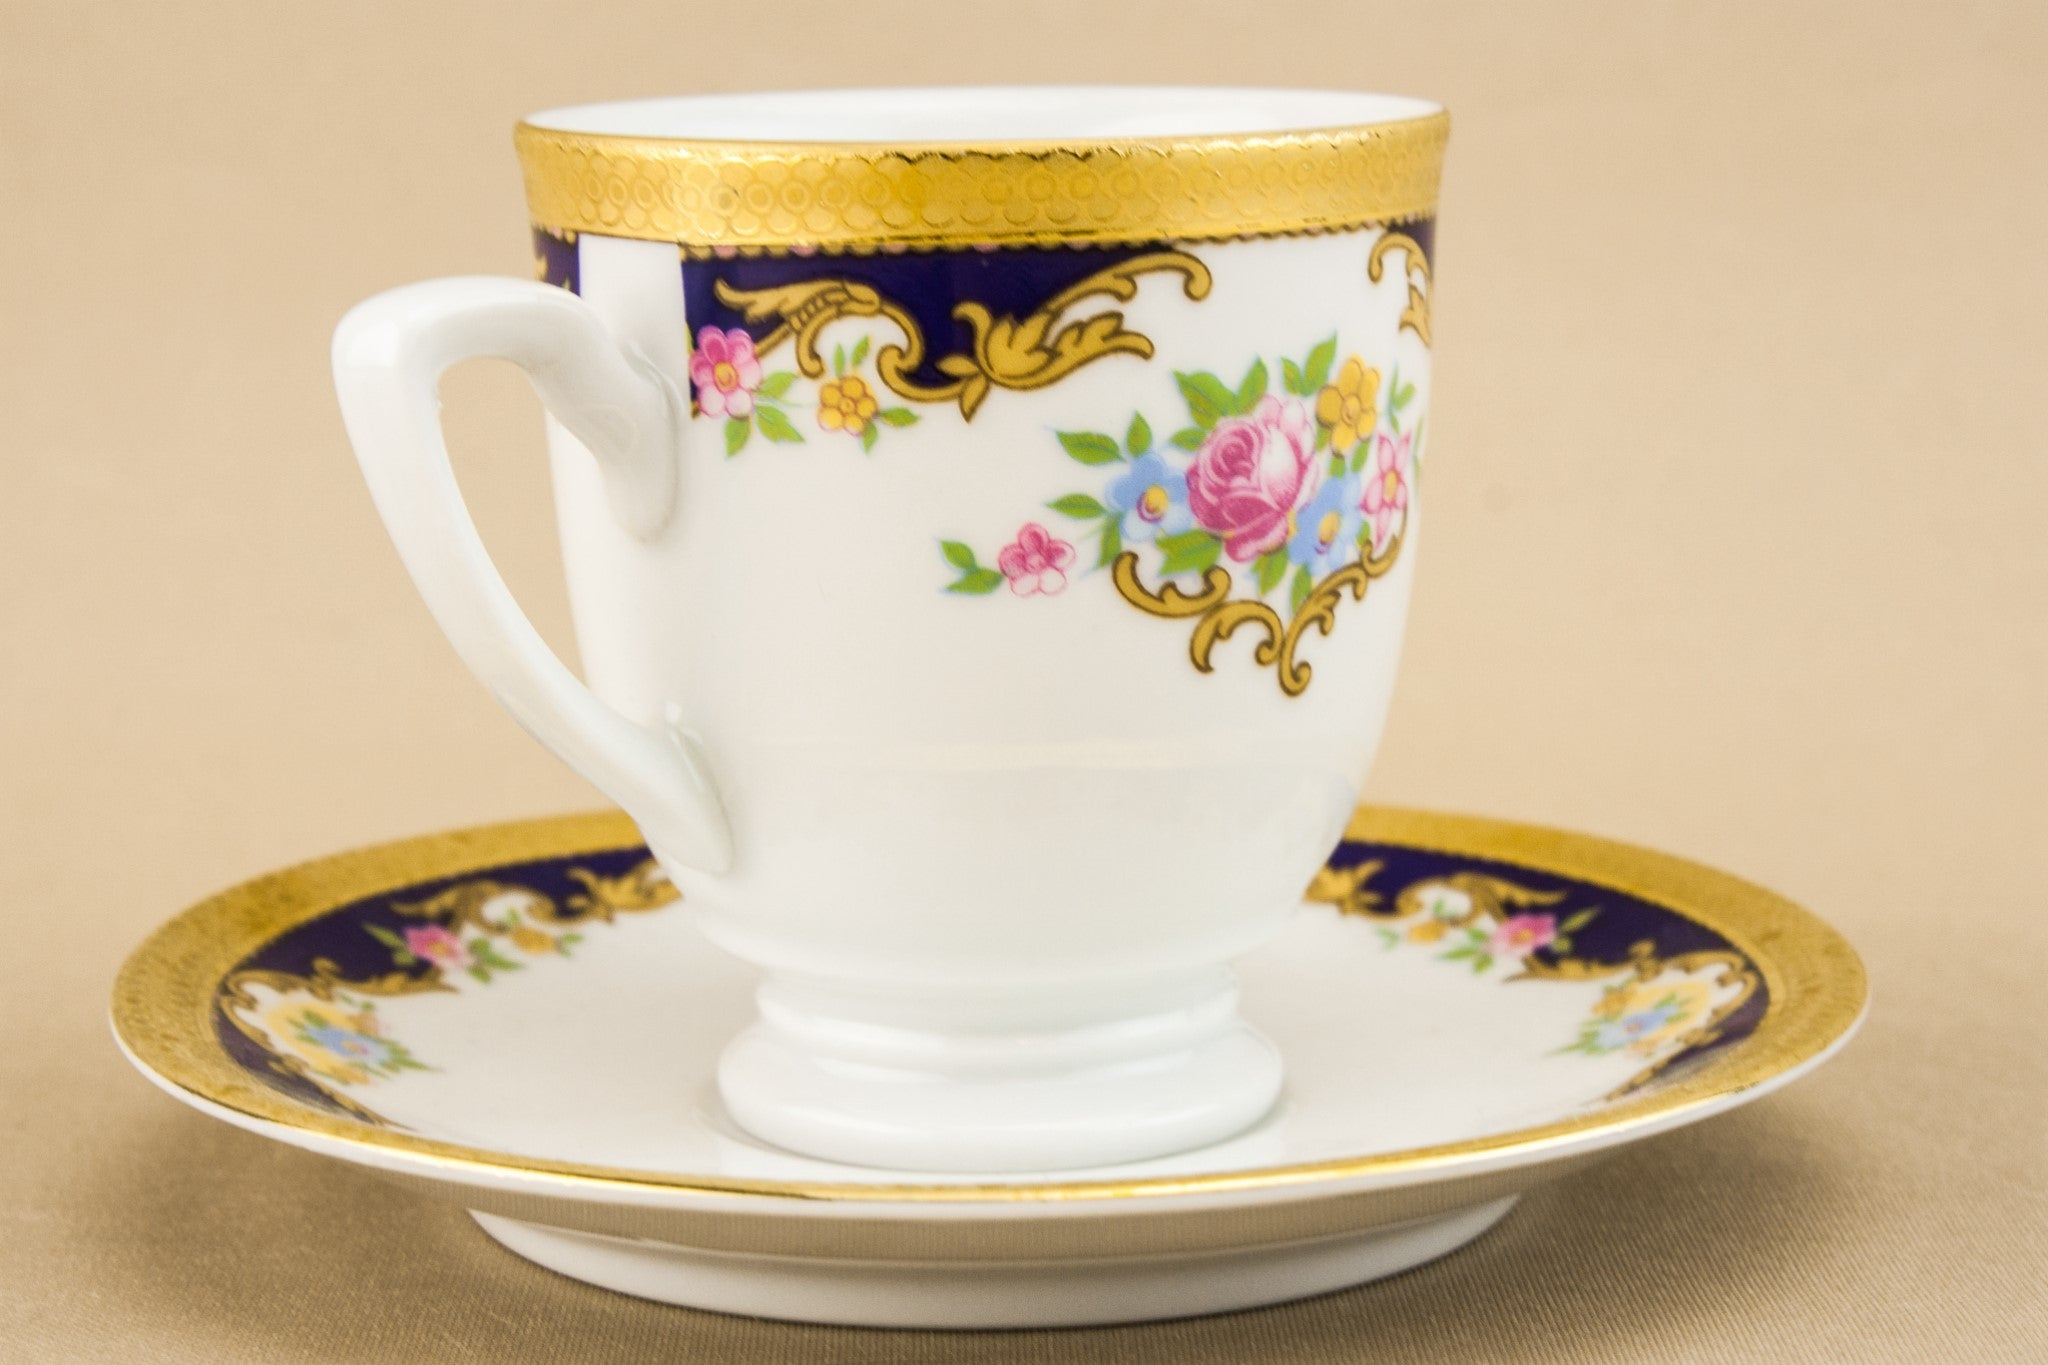 Floral porcelain coffee cup